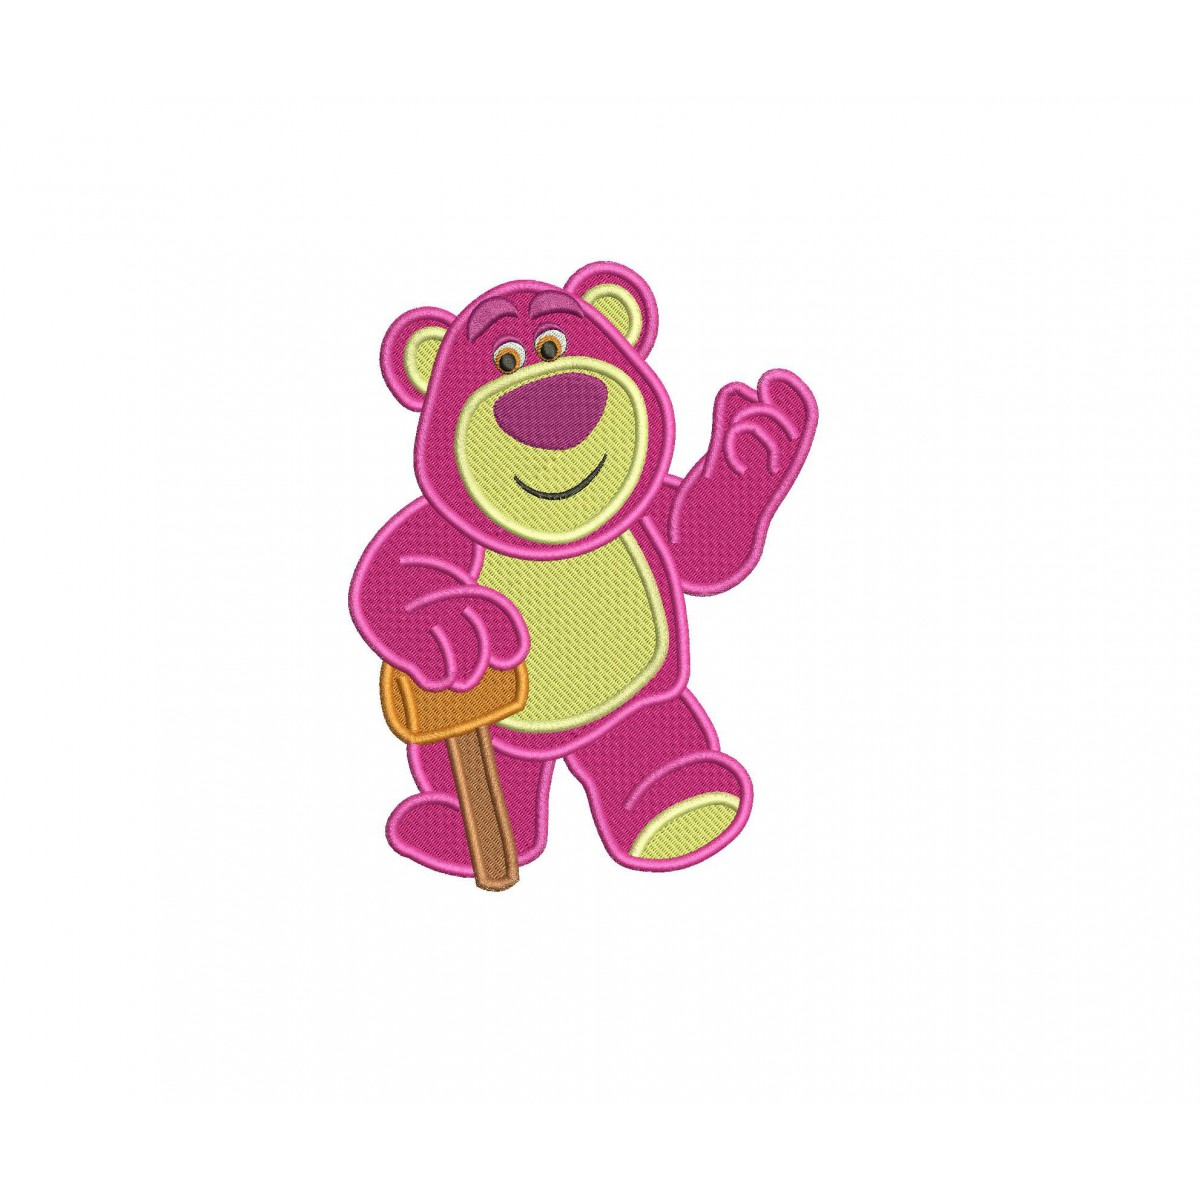 Lotso Toy Story Filled Embroidery Design